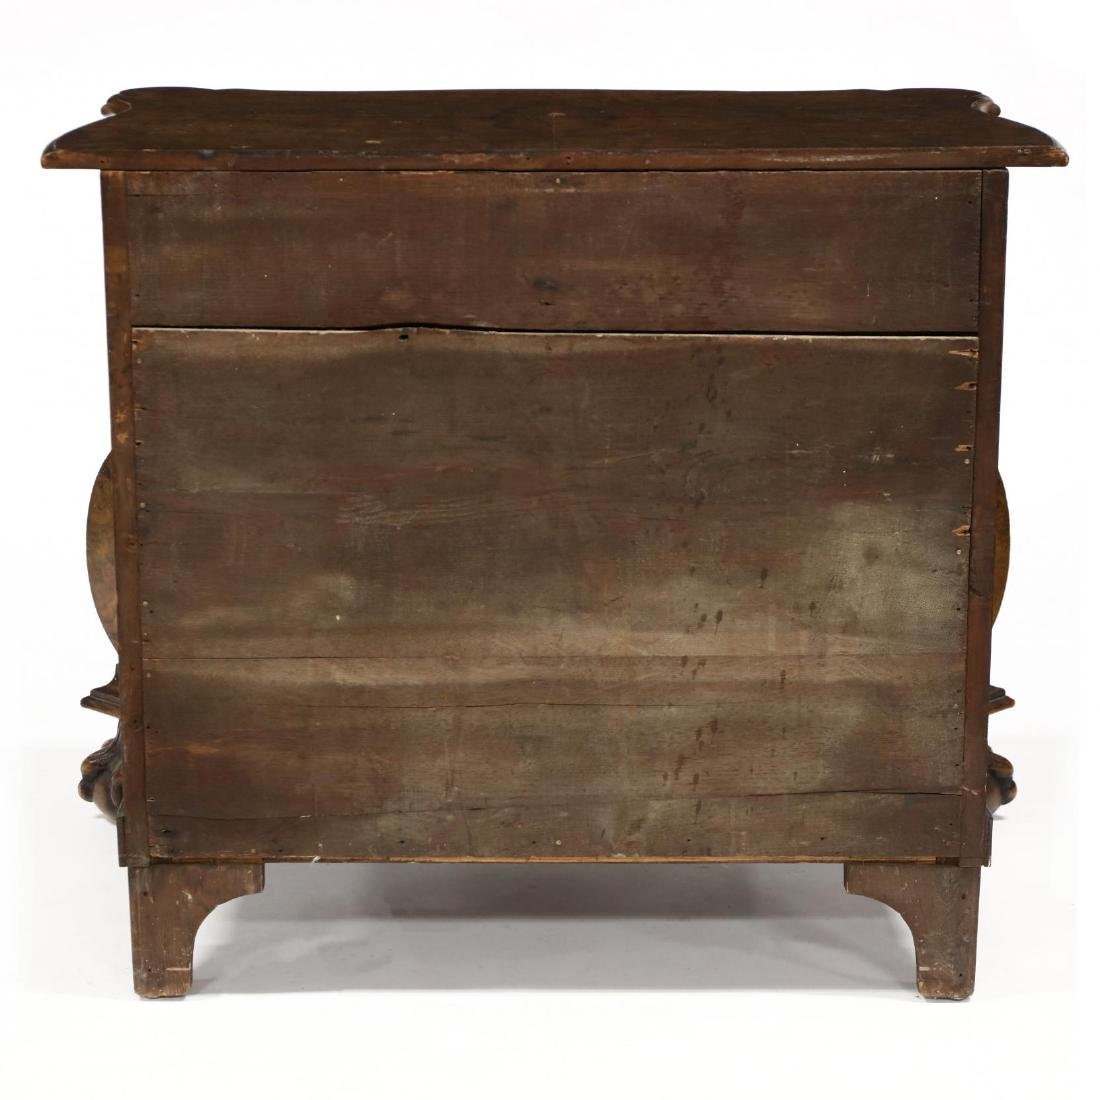 Italianate Burlwood Bombé Commode - 4